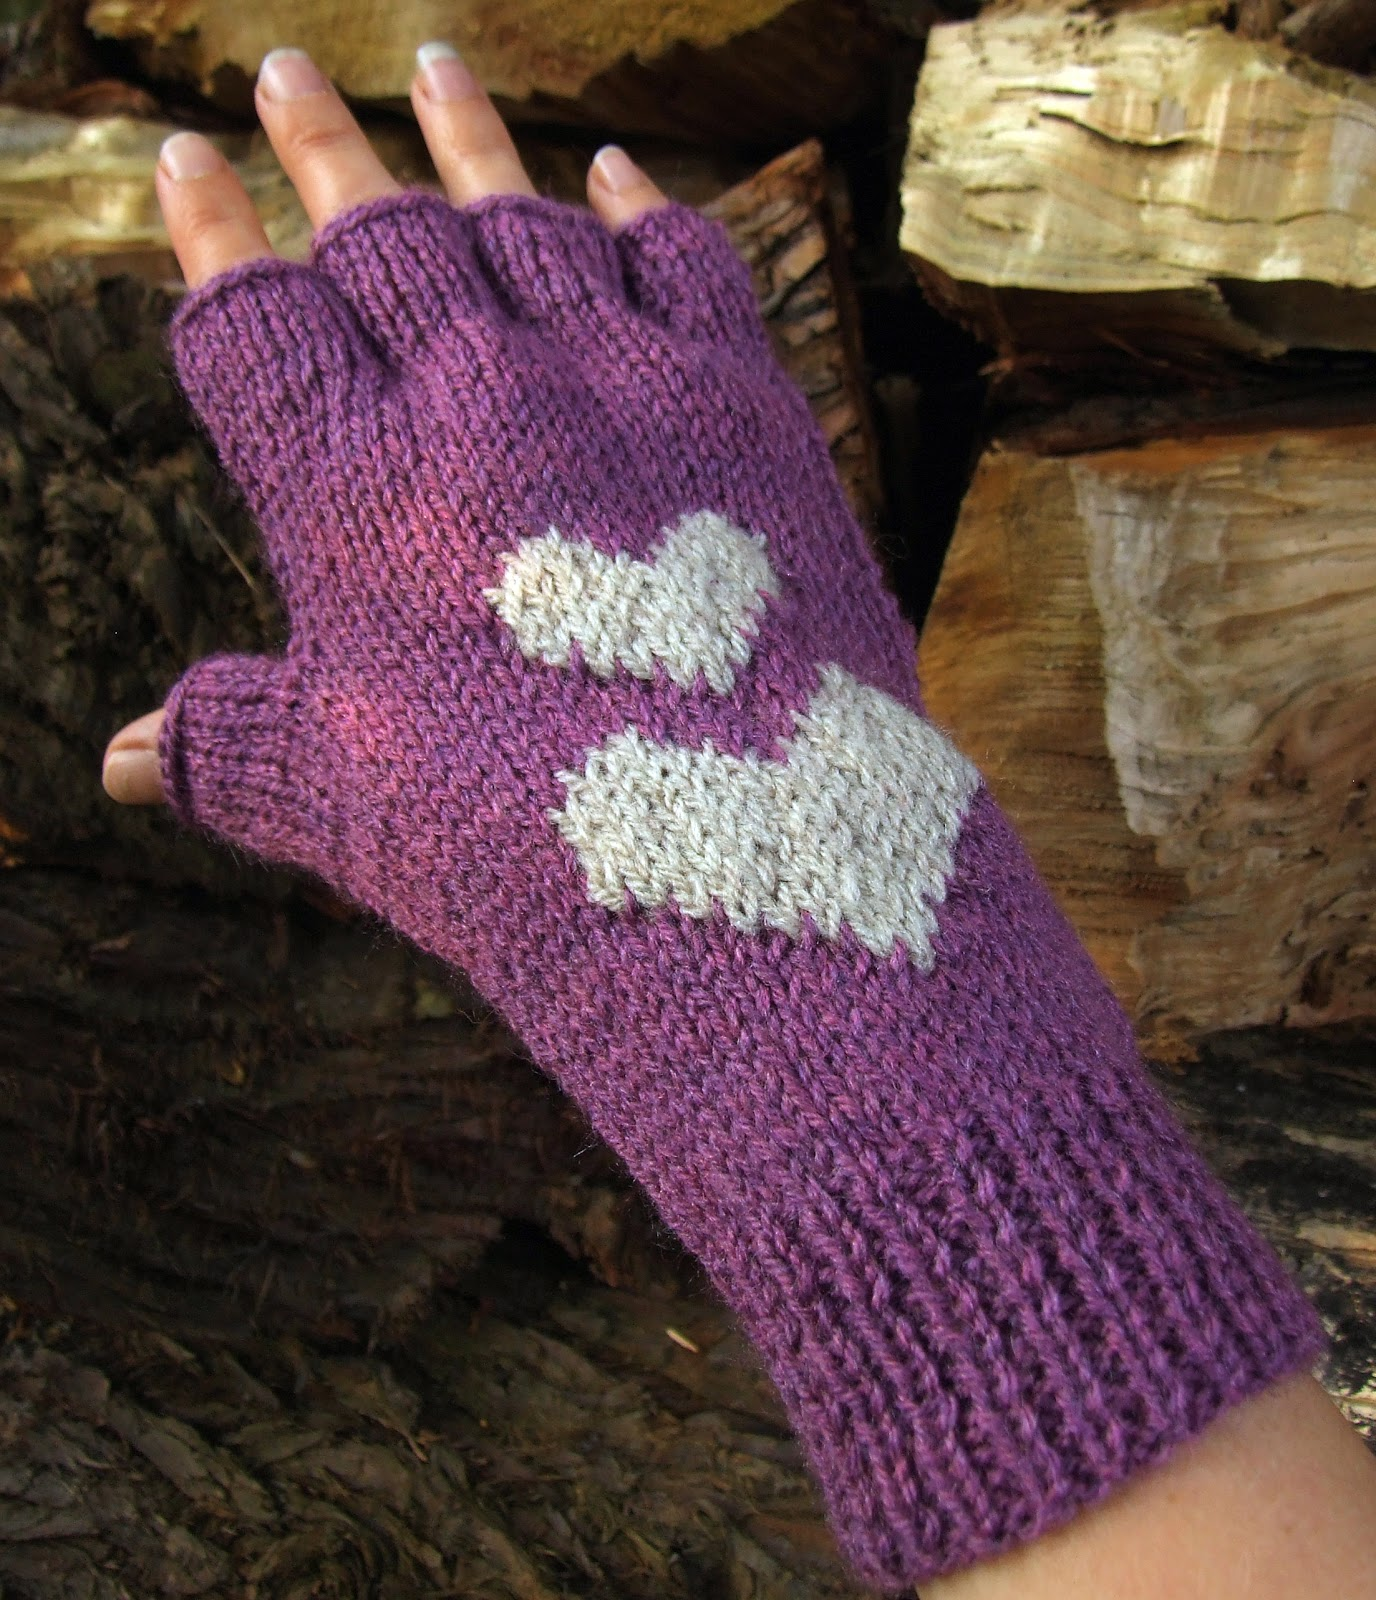 Fingerless Glove Pattern Knitting : Hearts Fingerless Gloves - Knitting Pattern - WoolnHook by Leonie Morgan